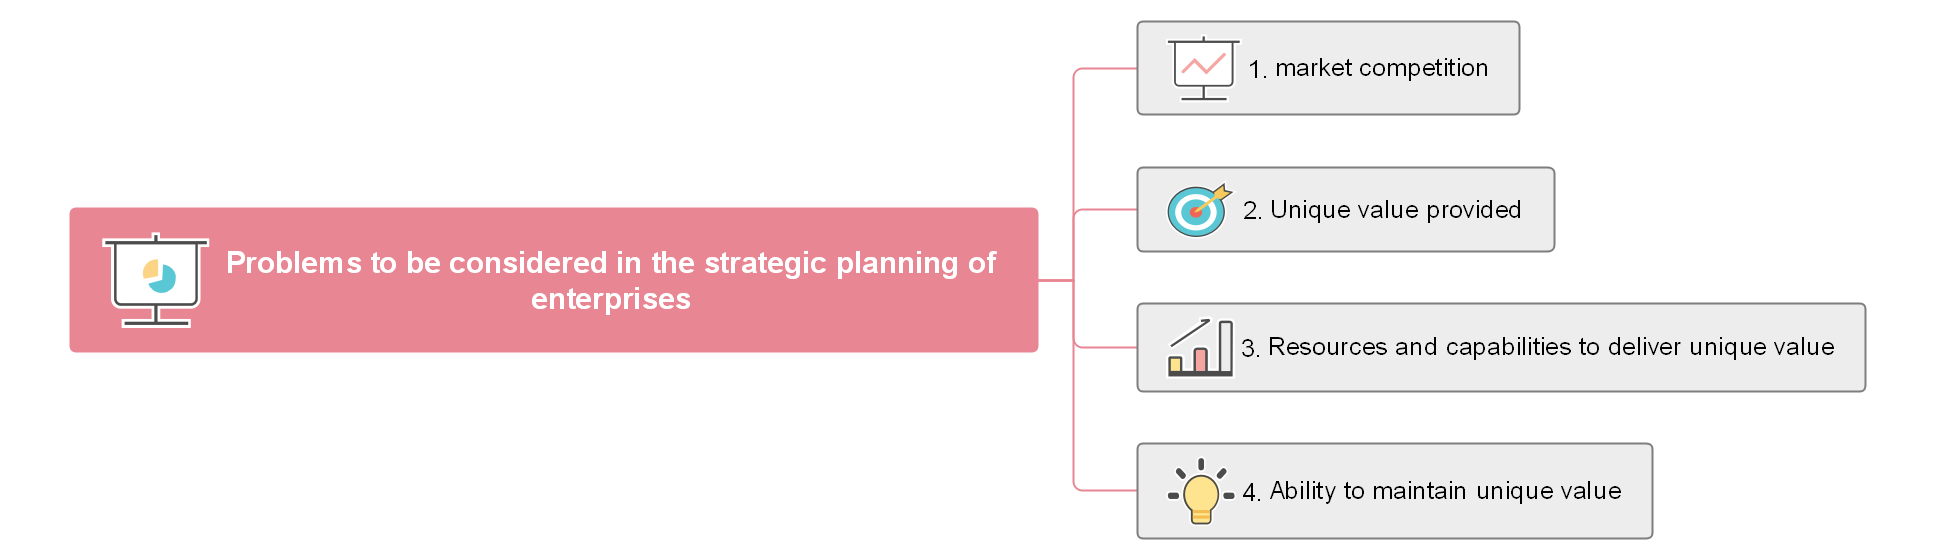 Some Issues to Consider in Corporate Strategic Planning